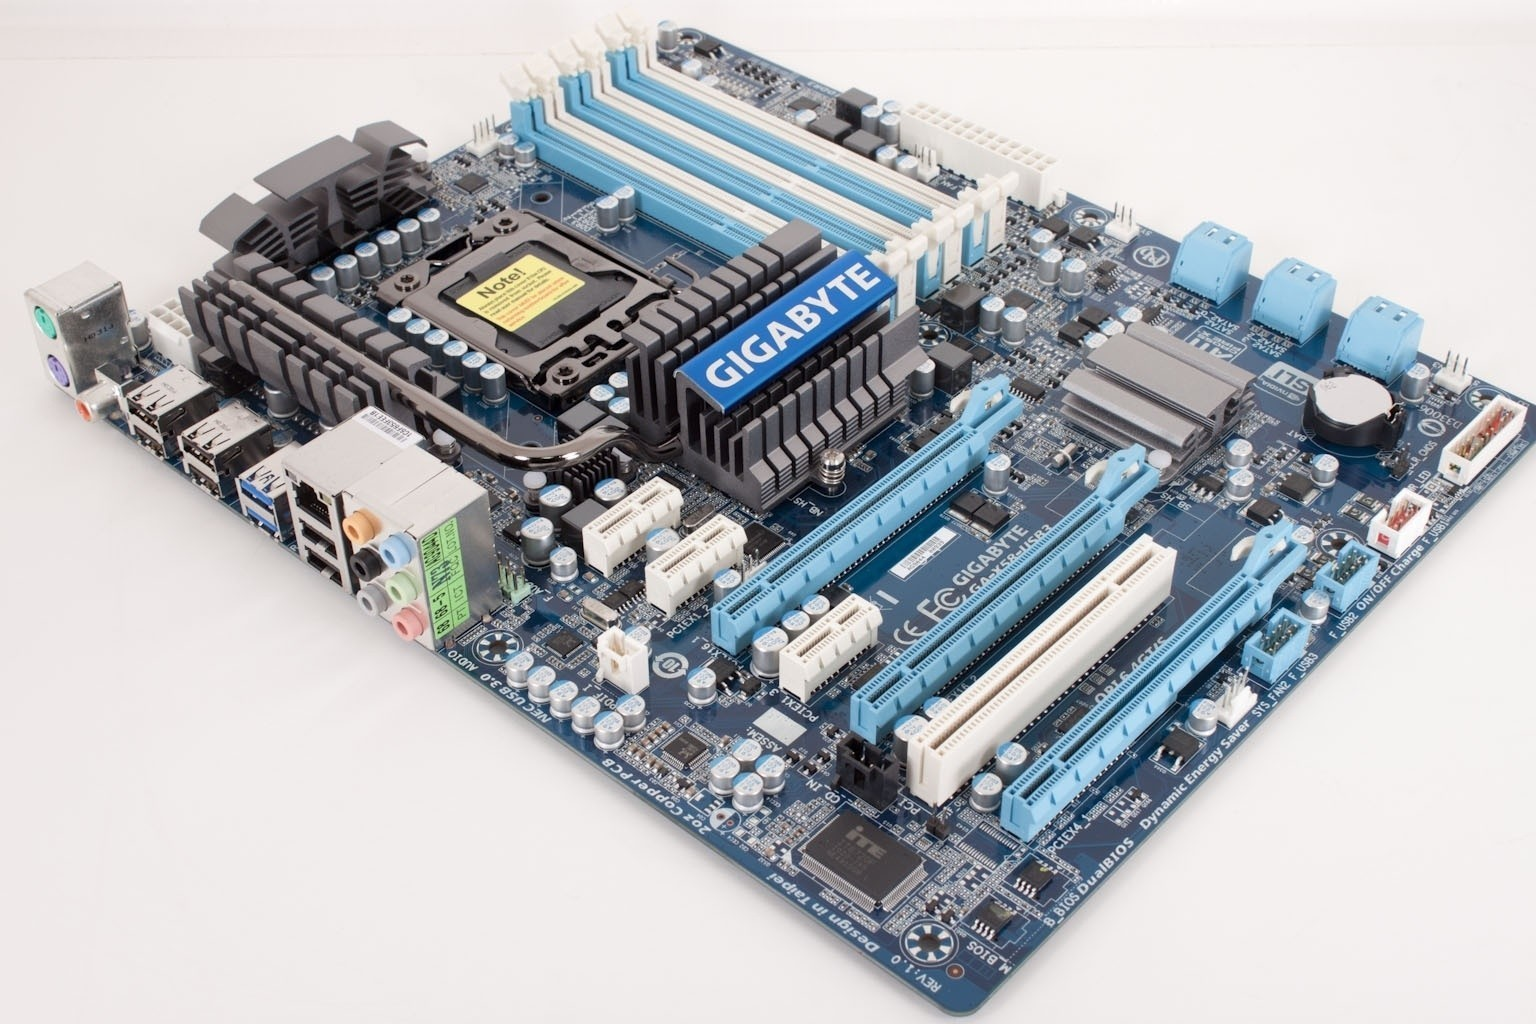 gigabyte_x58_usb3_intel_x58_express_motherboard_review